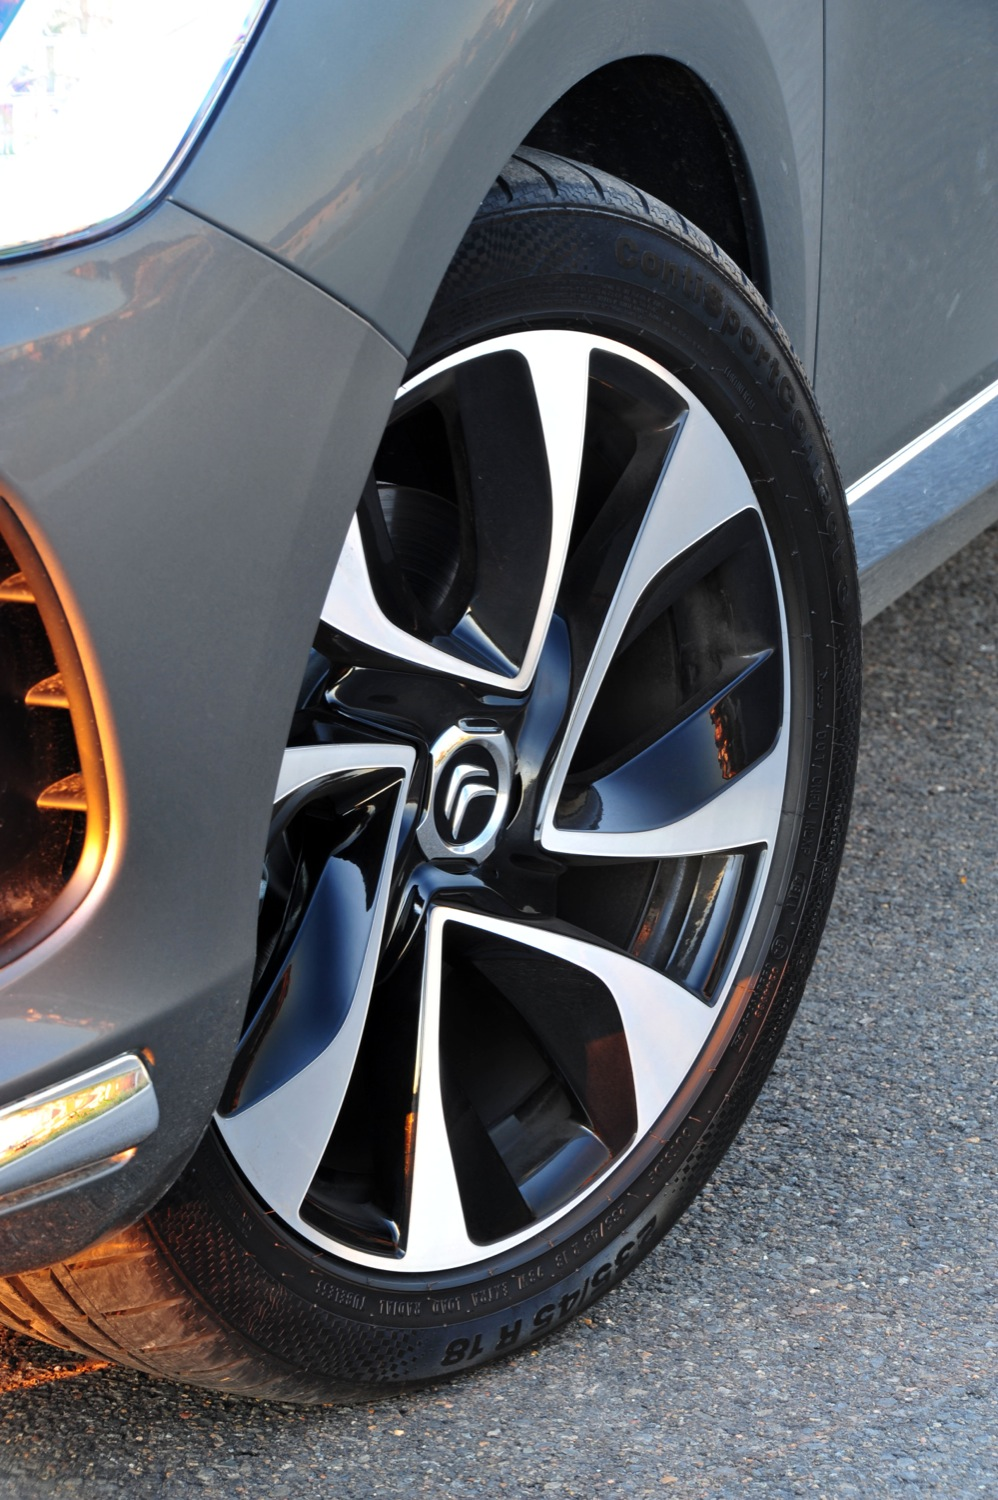 Citroen_DS5_AU_Wheel_0001.jpg